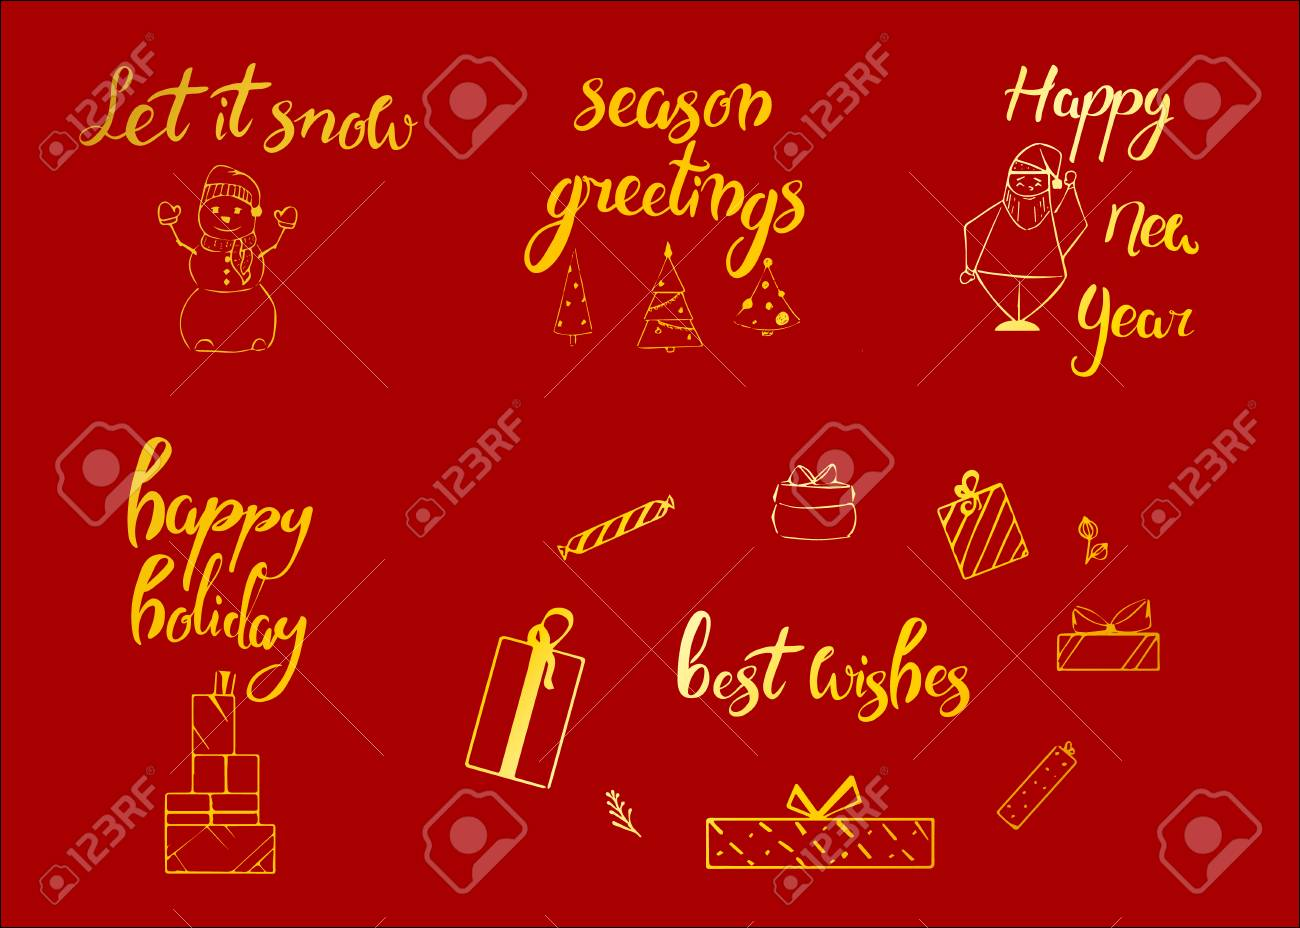 Merry Christmas Happy New Year 2018 Greeting Card Typography